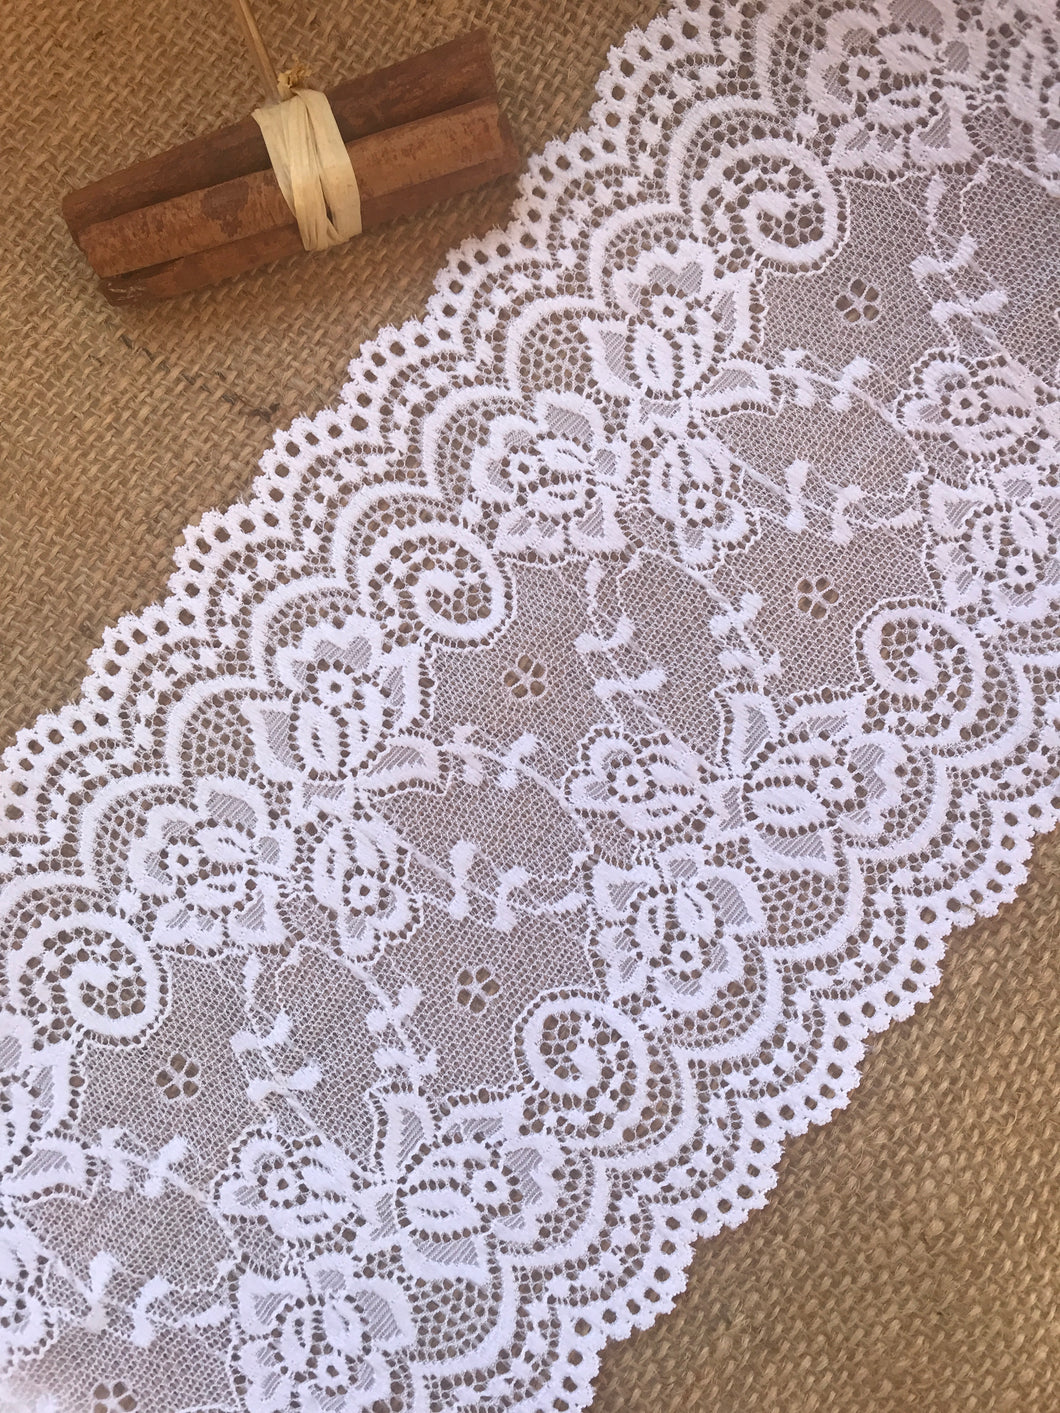 Premium White Stretch French Lace   15.5 cm/6